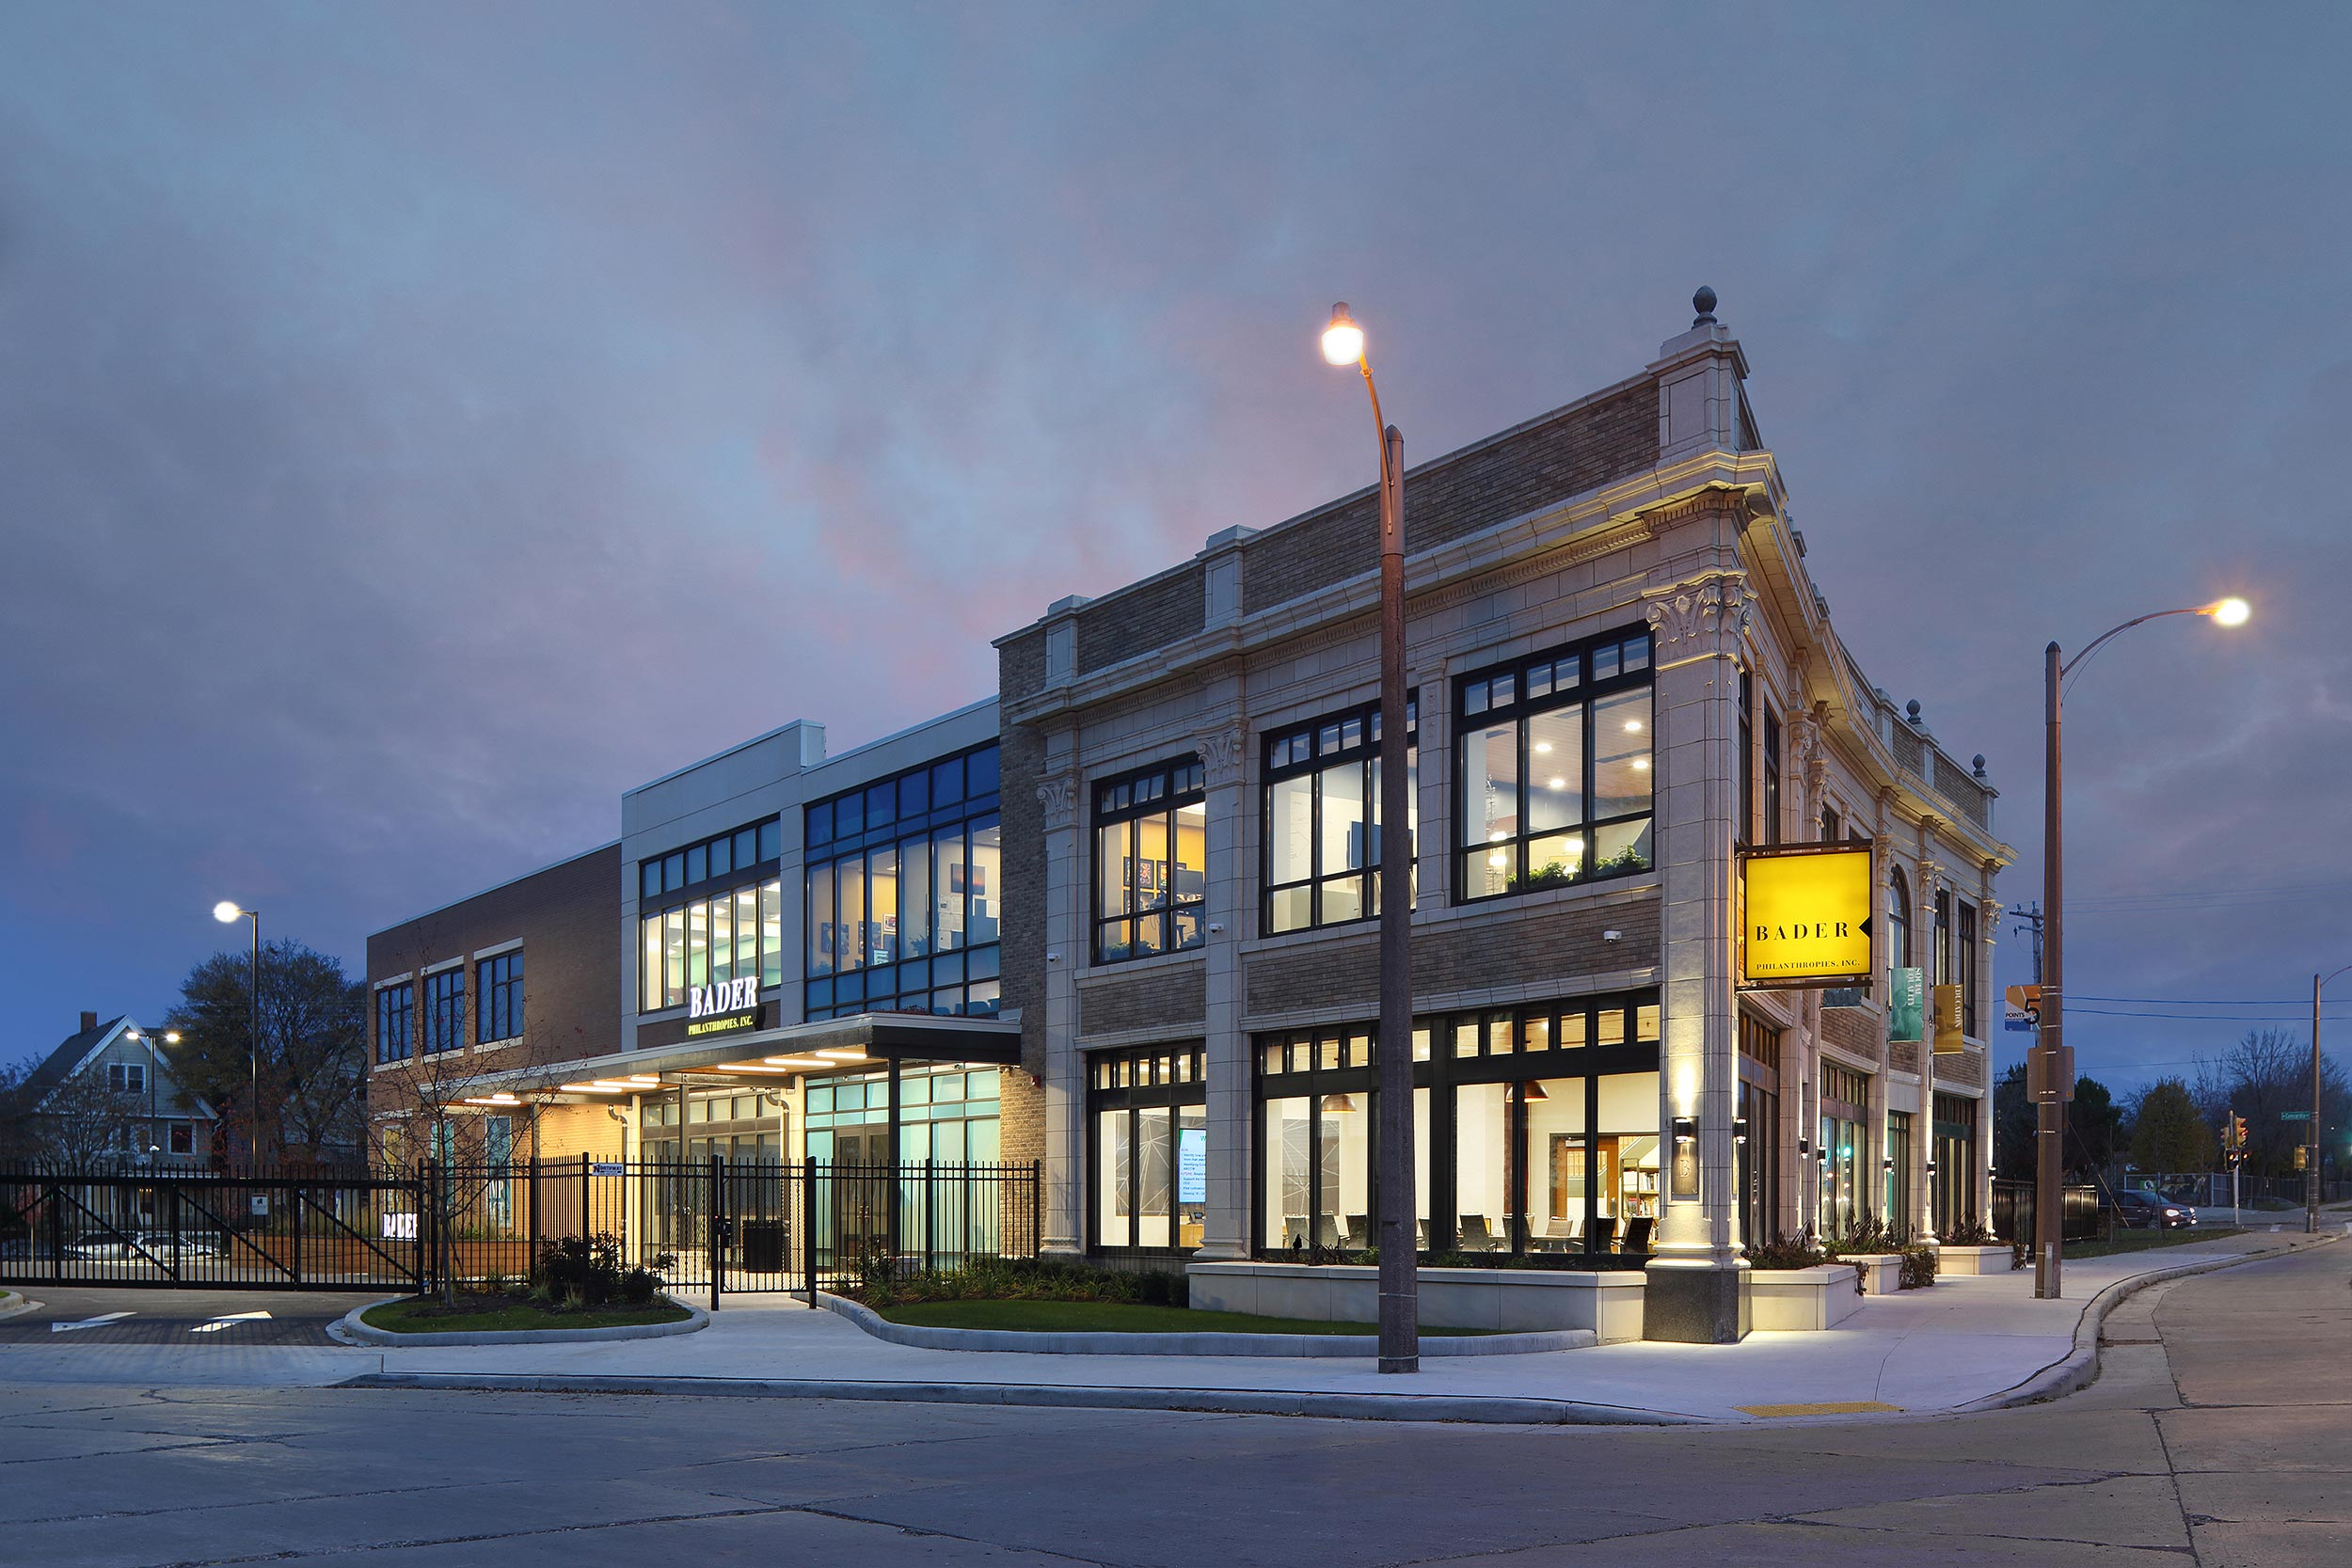 Commercial exterior photograph at dusk